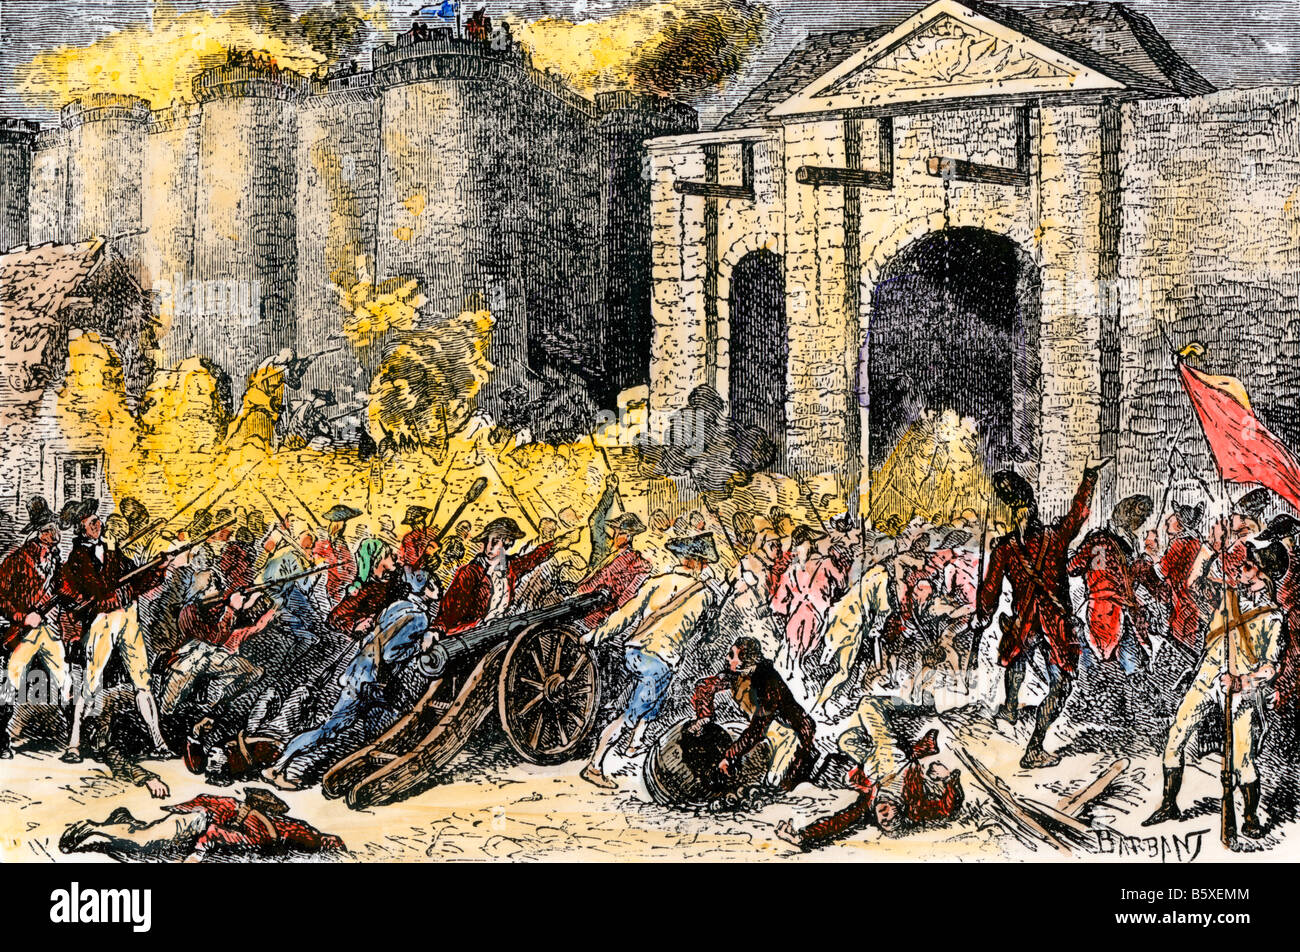 Capture of the Bastille French Revolution. Hand-colored woodcut - Stock Image